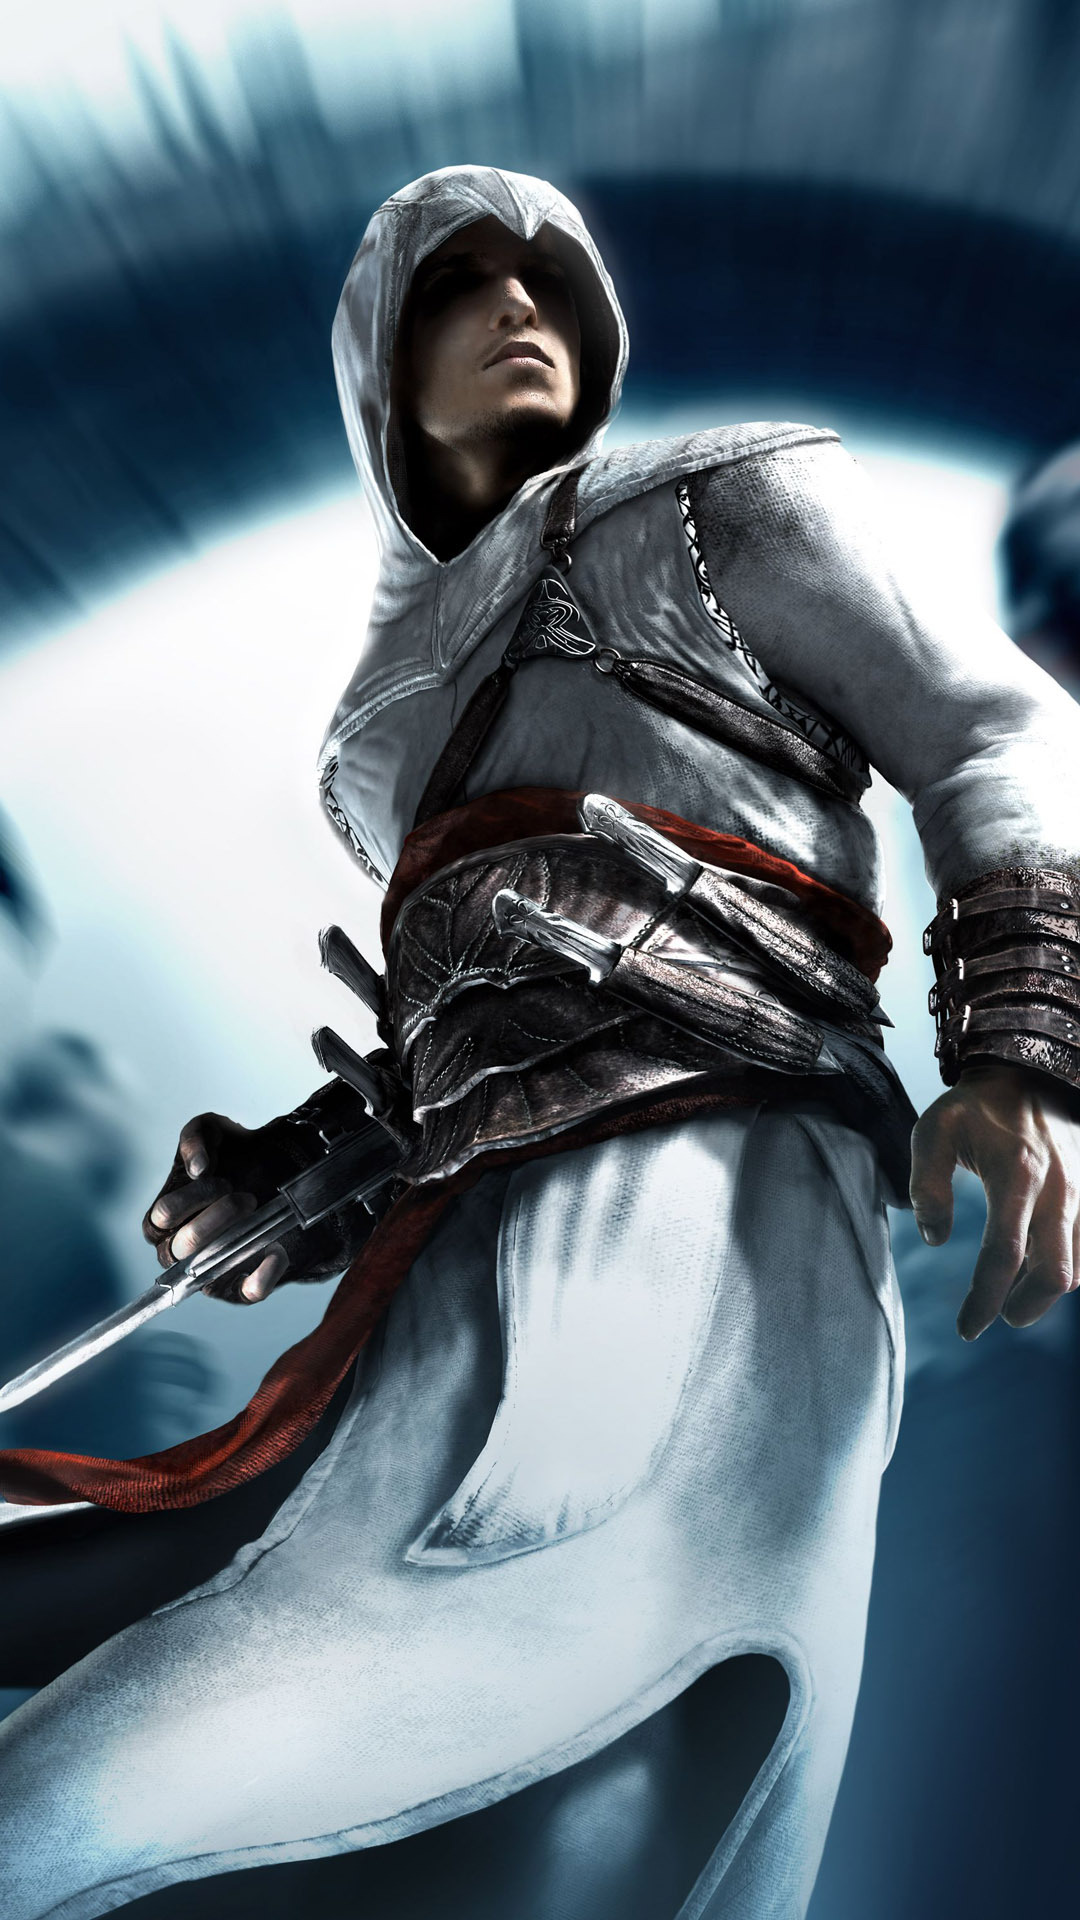 Assassins Creed Htc One Best Htc One Wallpapers Free To Download